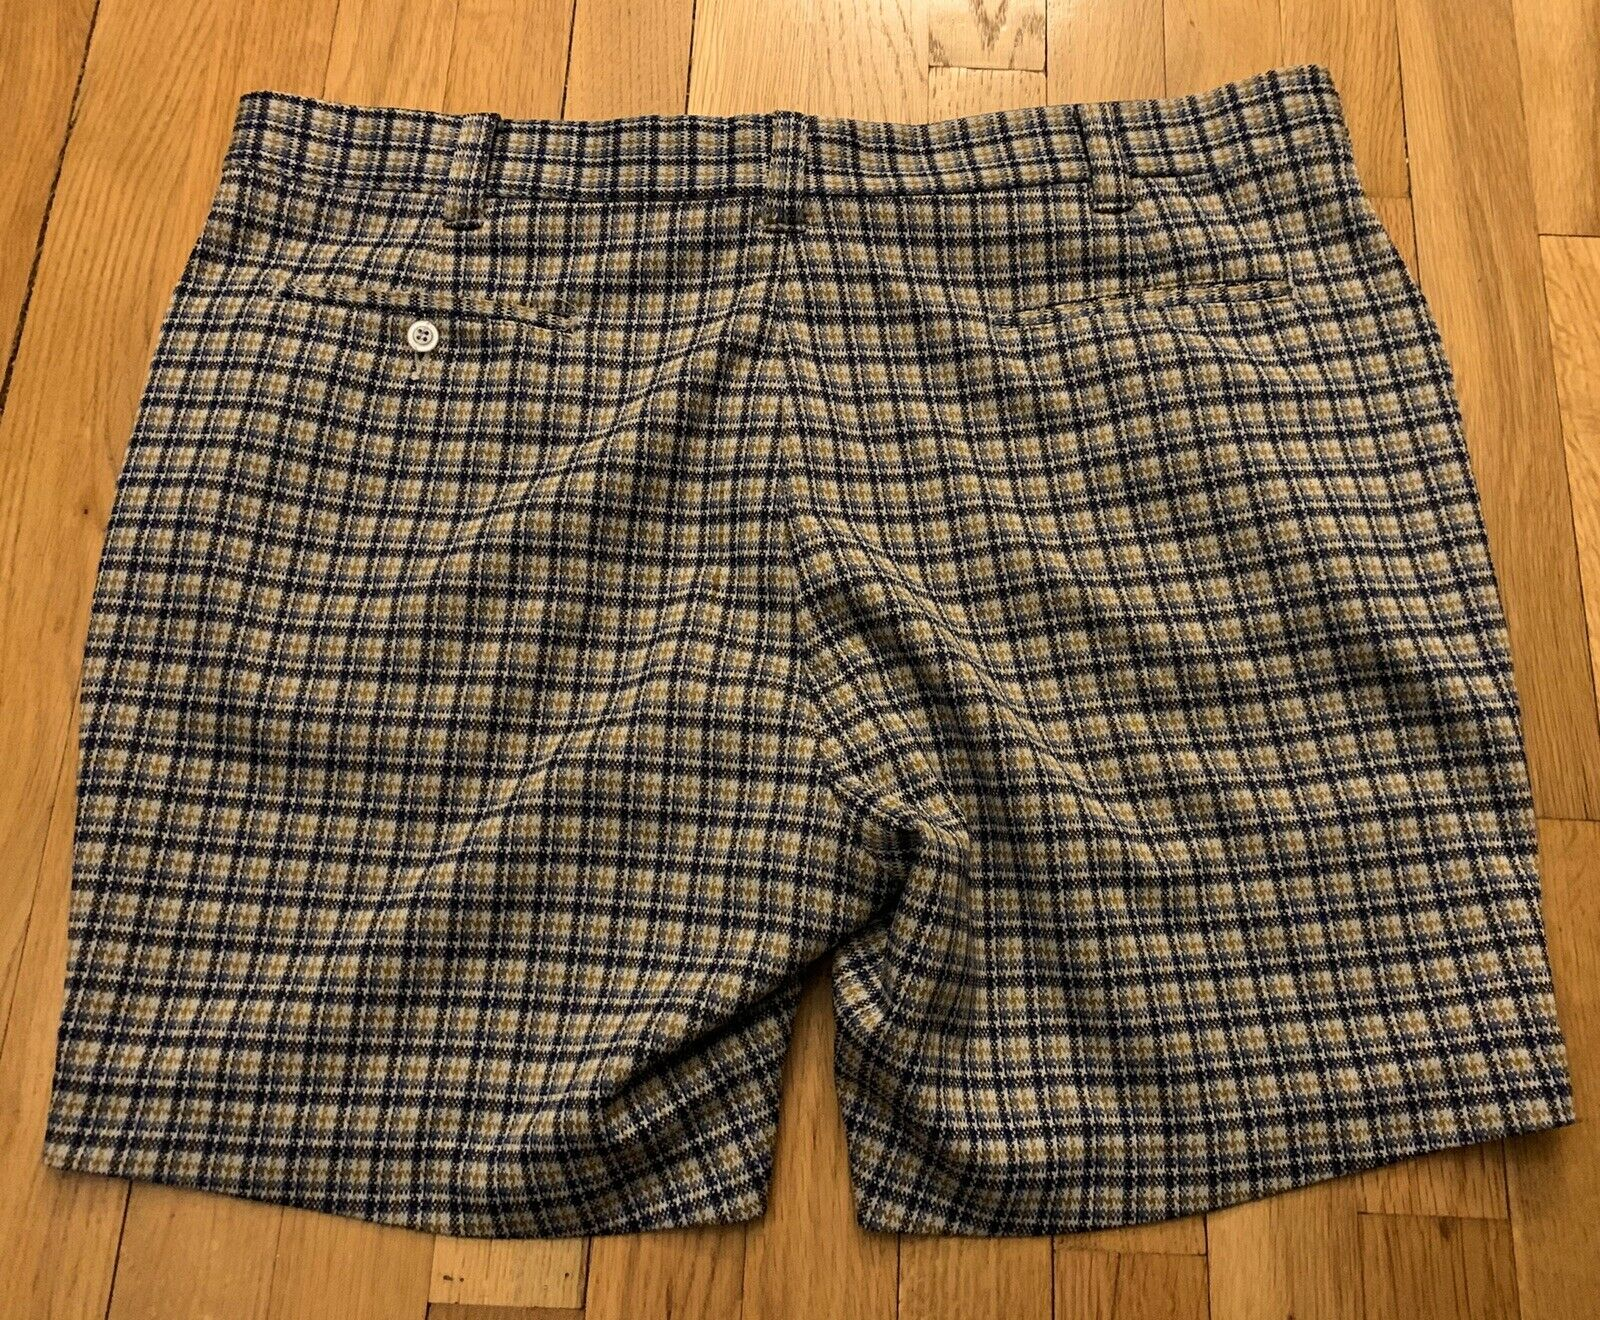 Vintage Tailored Double Knit Shorts, Size 42. - image 2